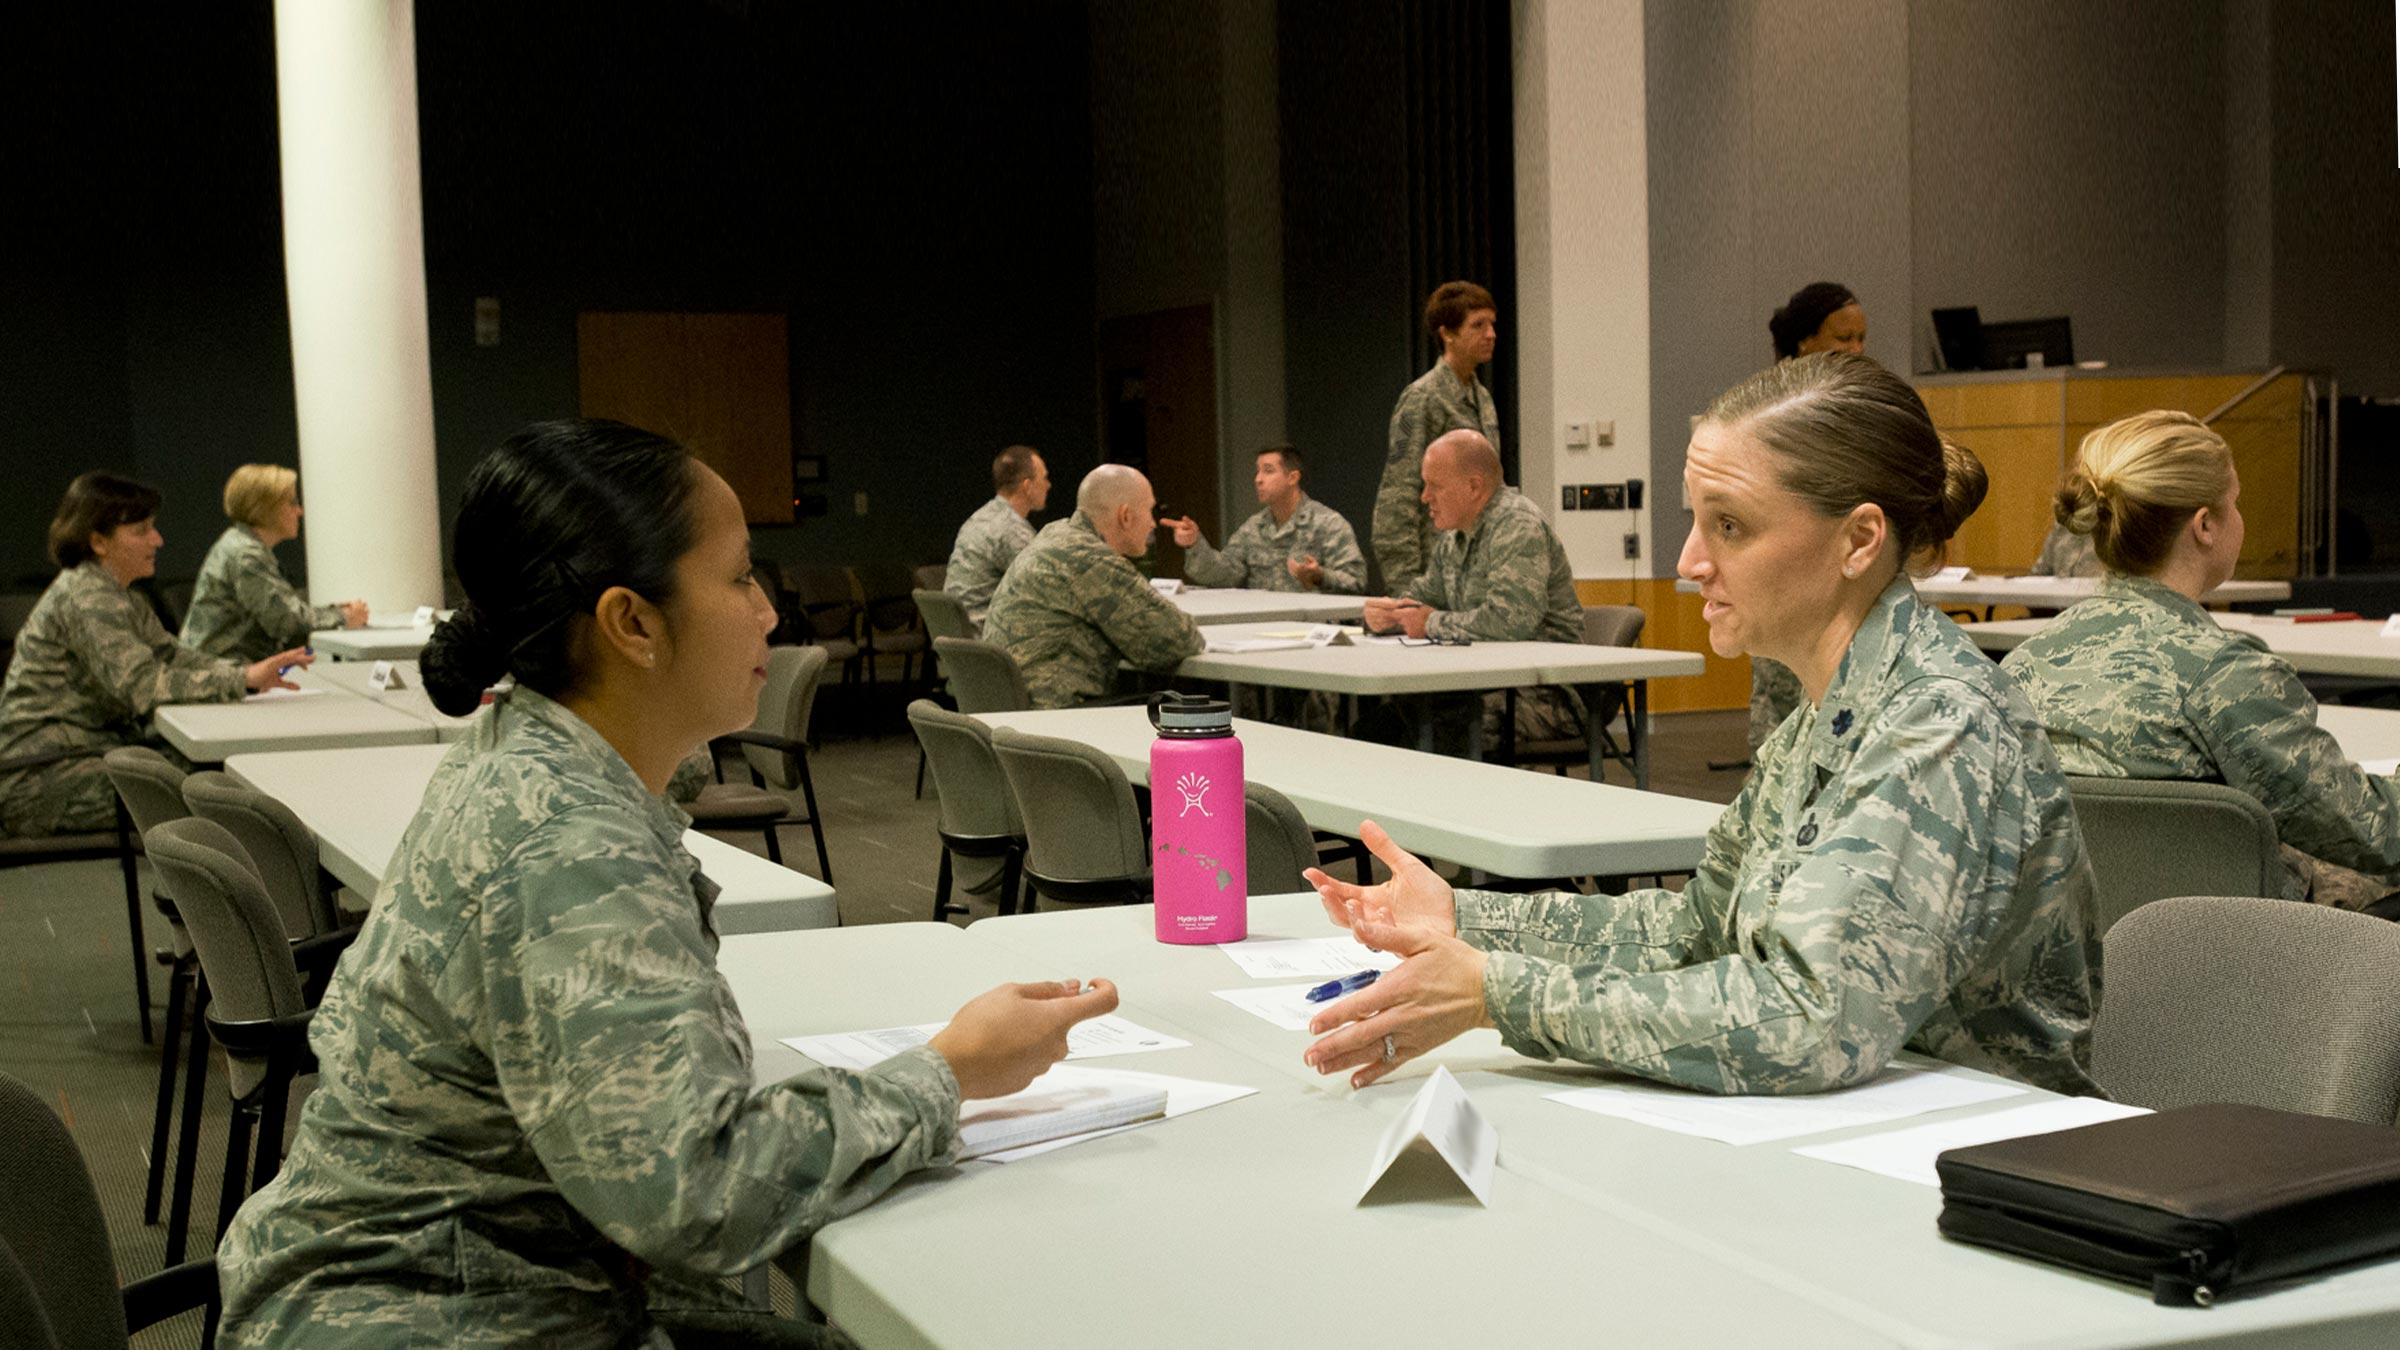 Two service members sitting at table talking